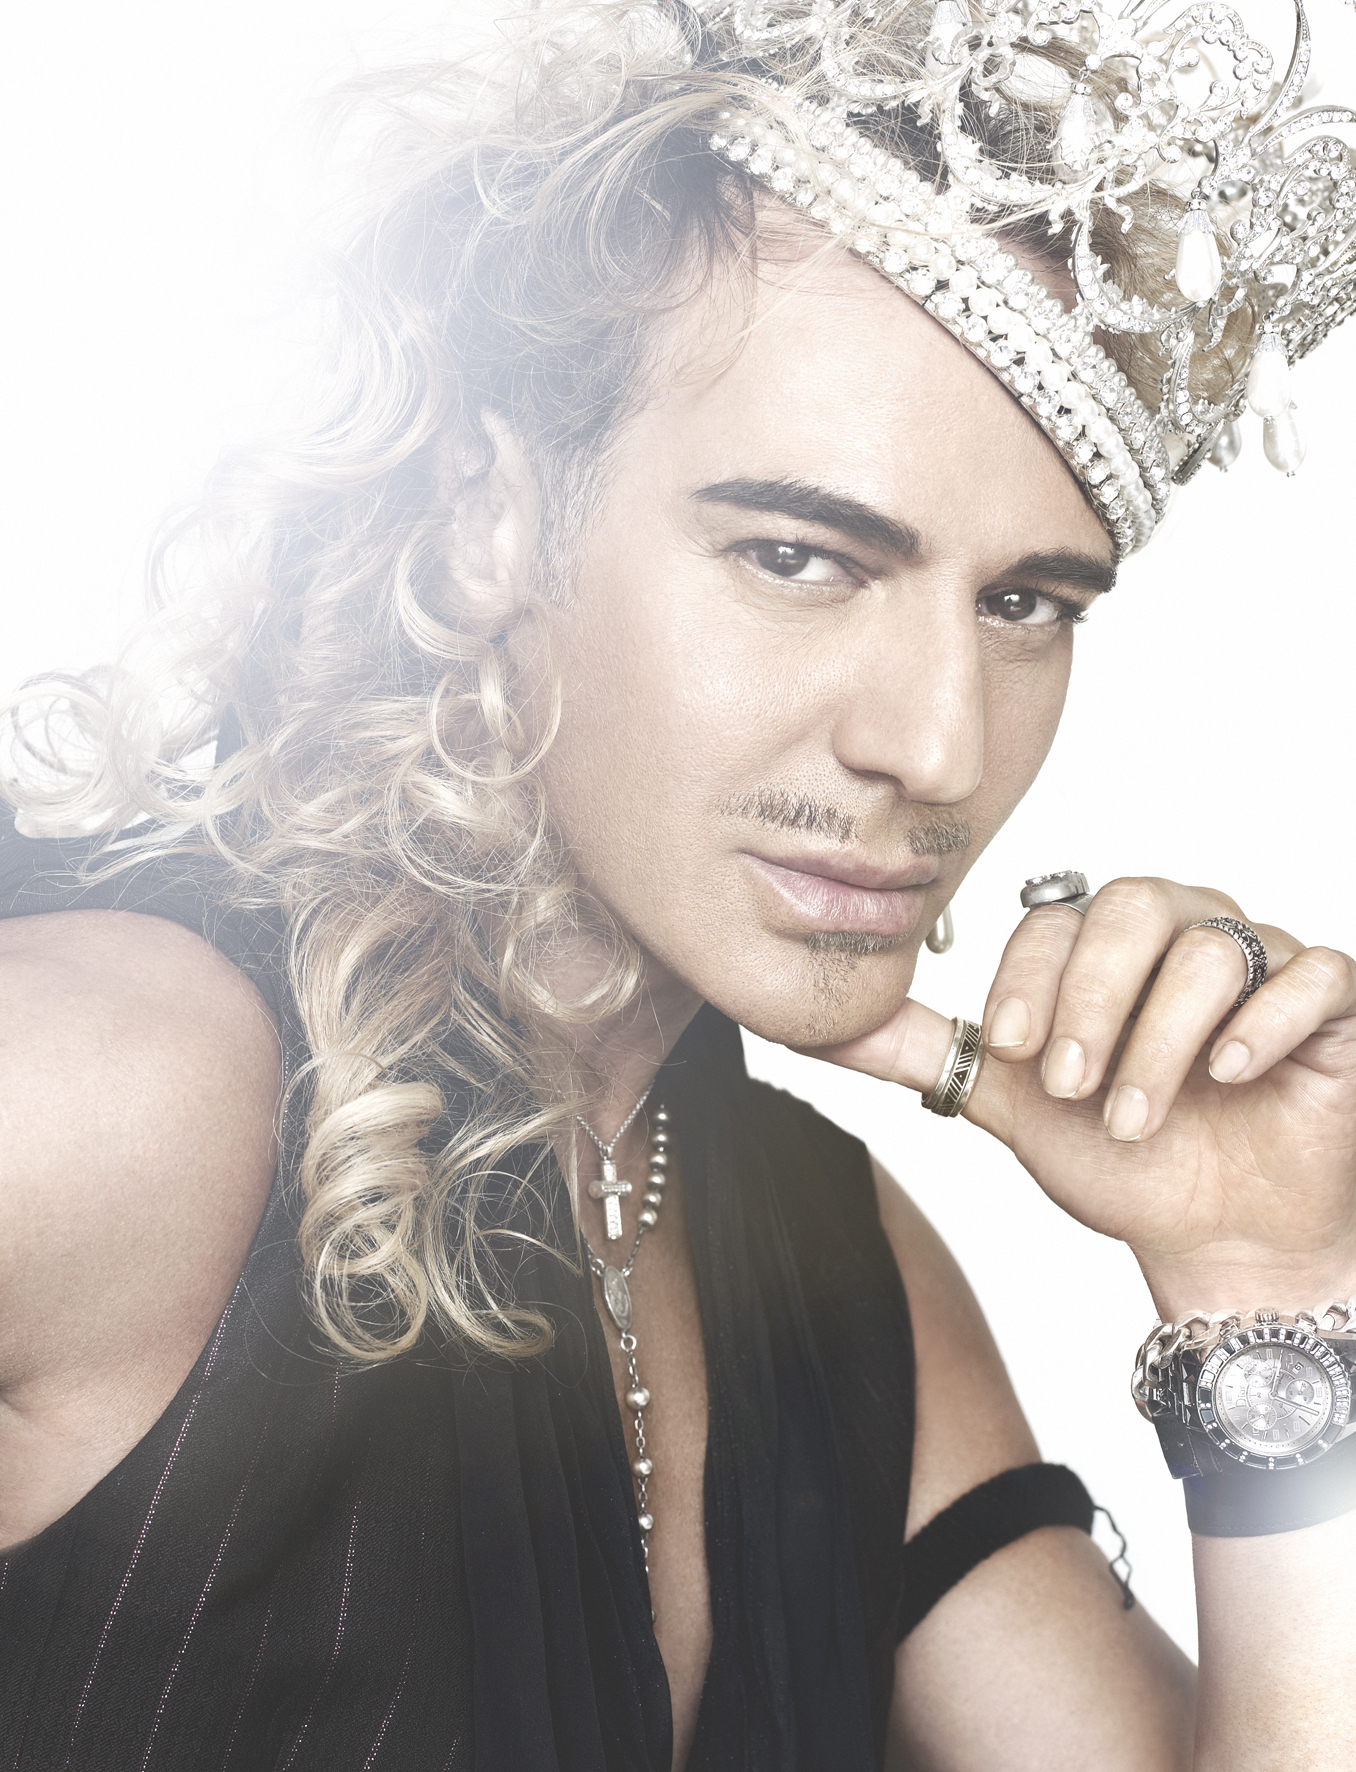 John Galliano, The King of Fashion